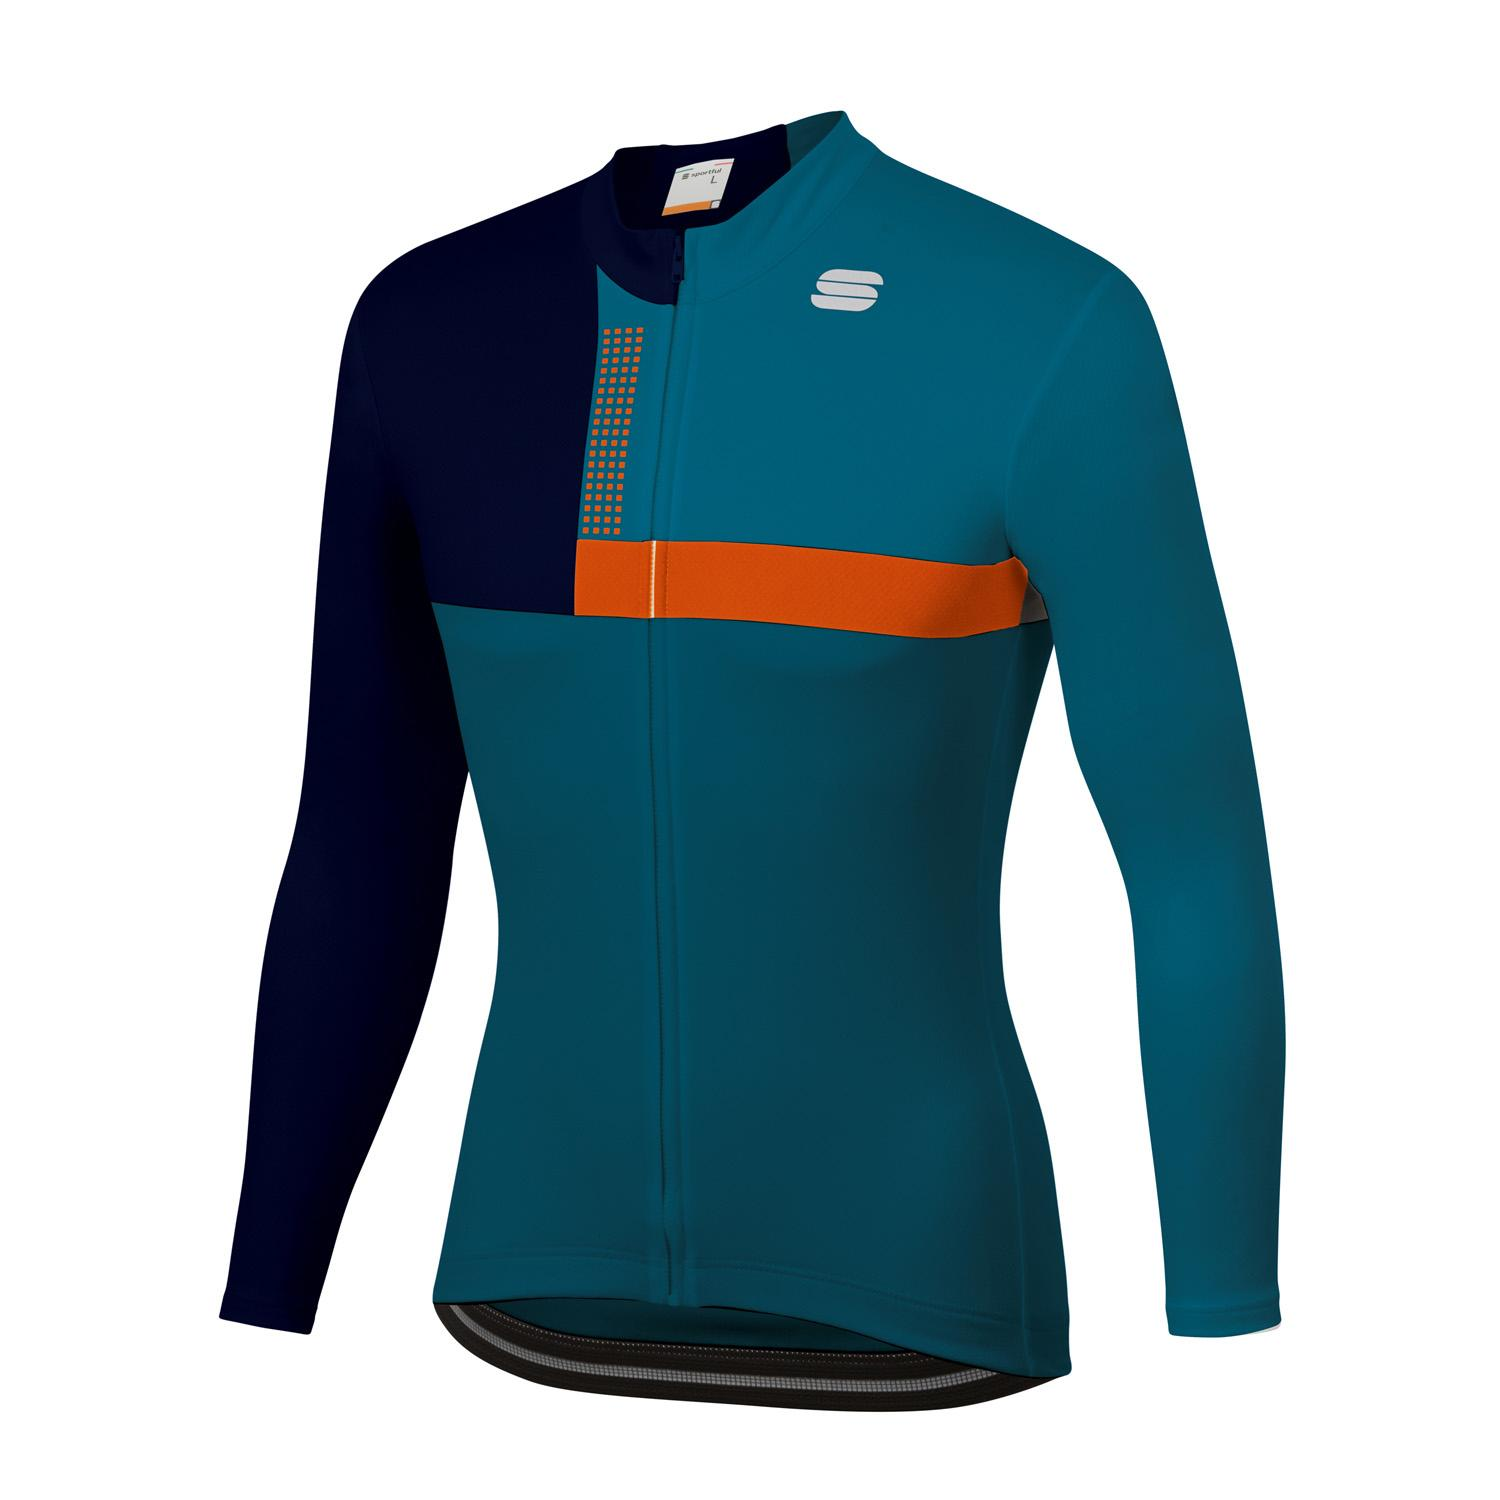 Sportful Fietsshirt lange mouwen Heren Blauw Oranje - BOLD THERMAL JERSEY BLUE CORSAIR ORANGE SDR